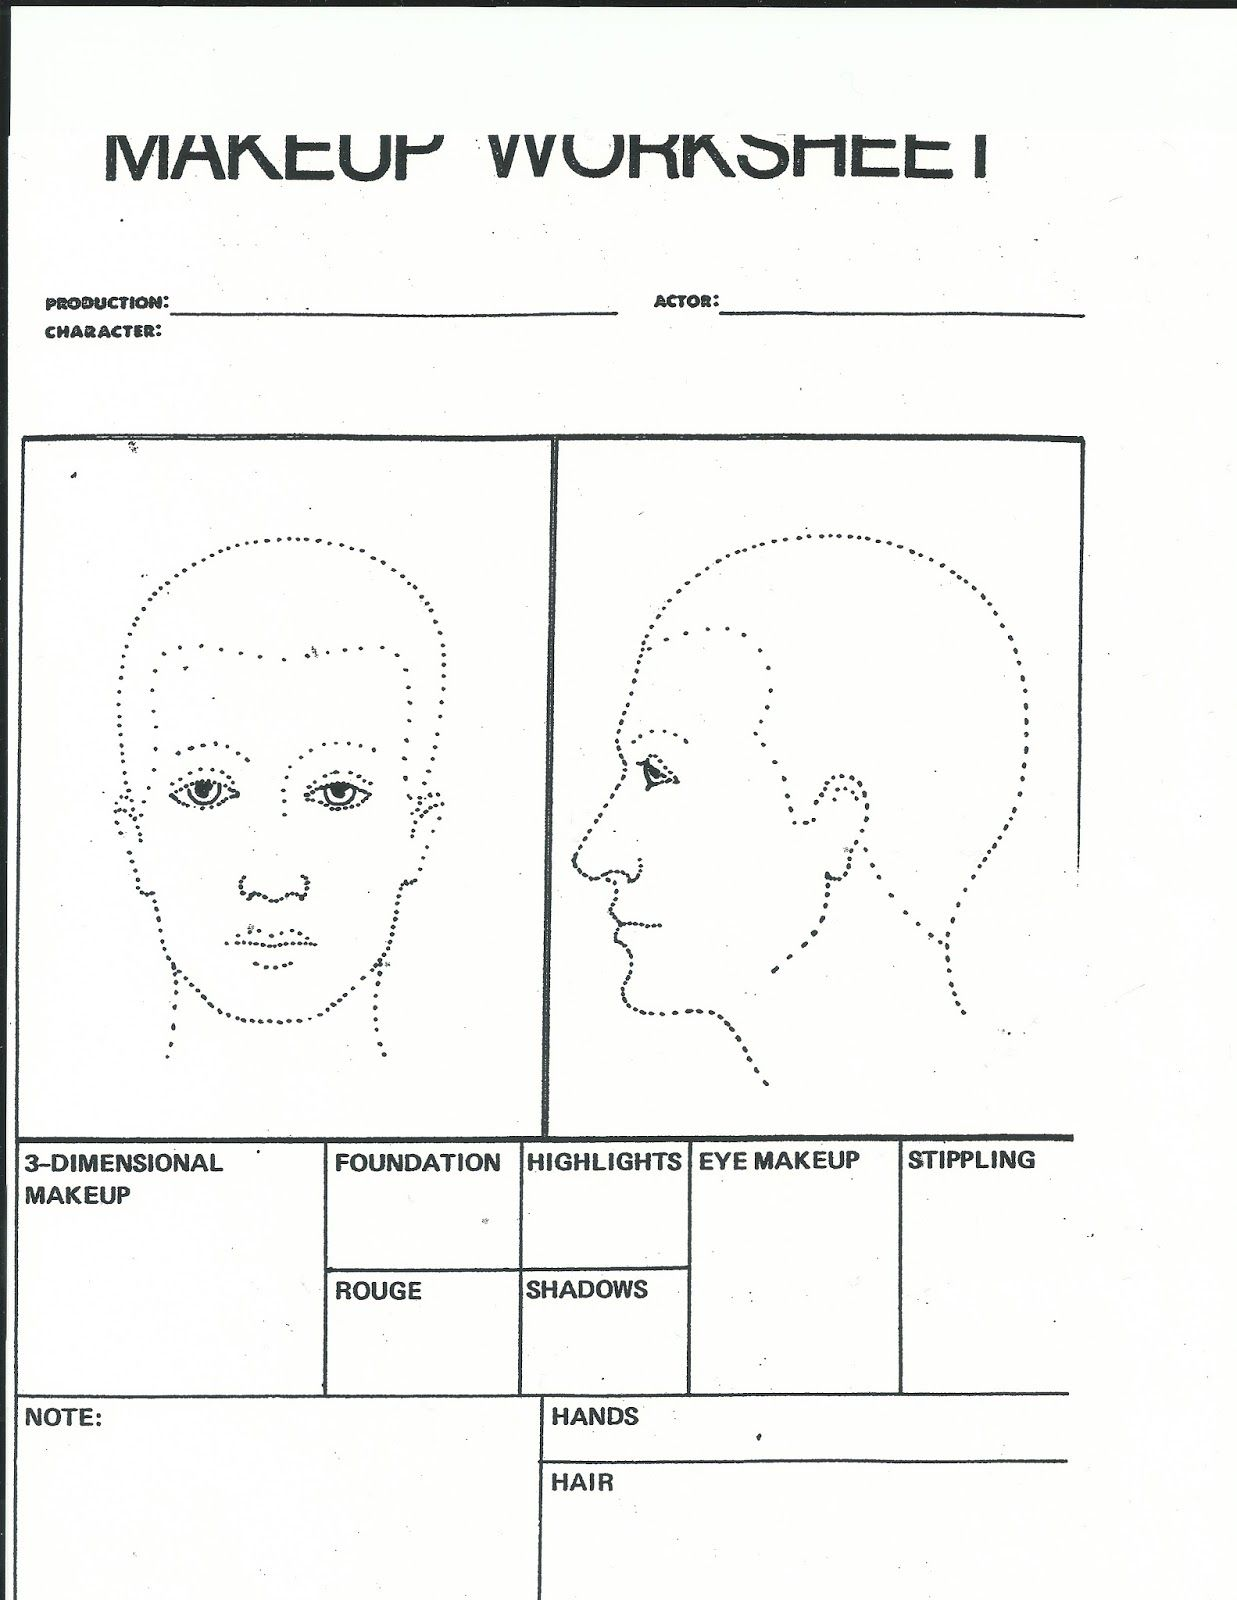 Hair Makeup Worksheet  Makeup Vidalondon  Morgue